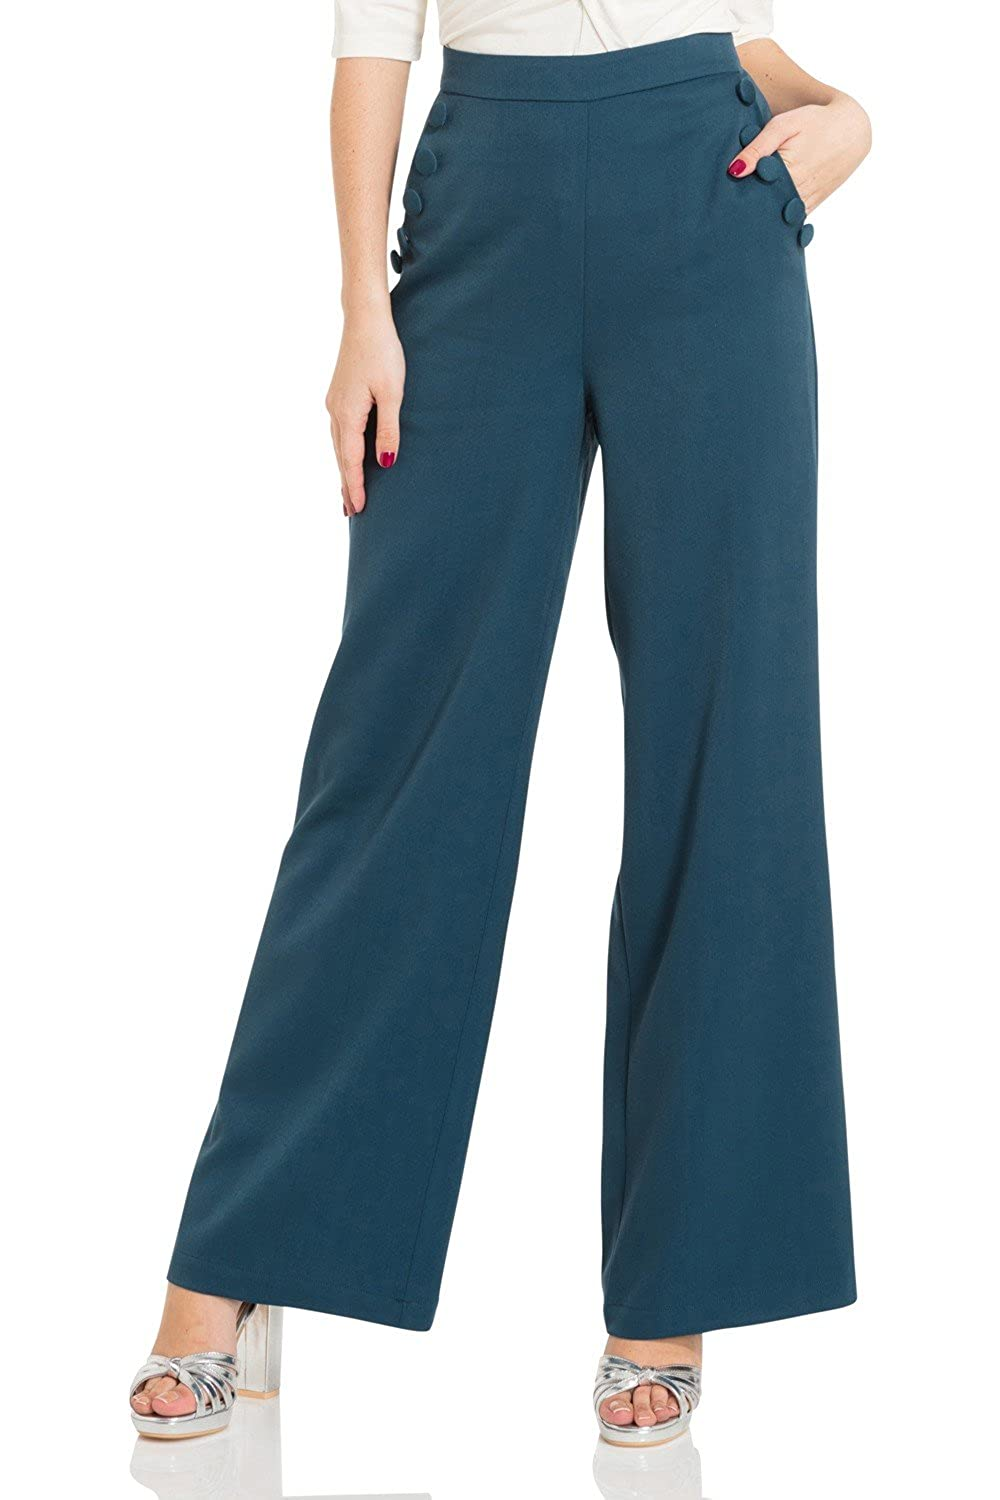 Vintage High Waisted Trousers, Sailor Pants, Jeans Voodoo Vixen Sara Retro 40s 50s Vintage High Waist Wide Leg Trousers £34.99 AT vintagedancer.com